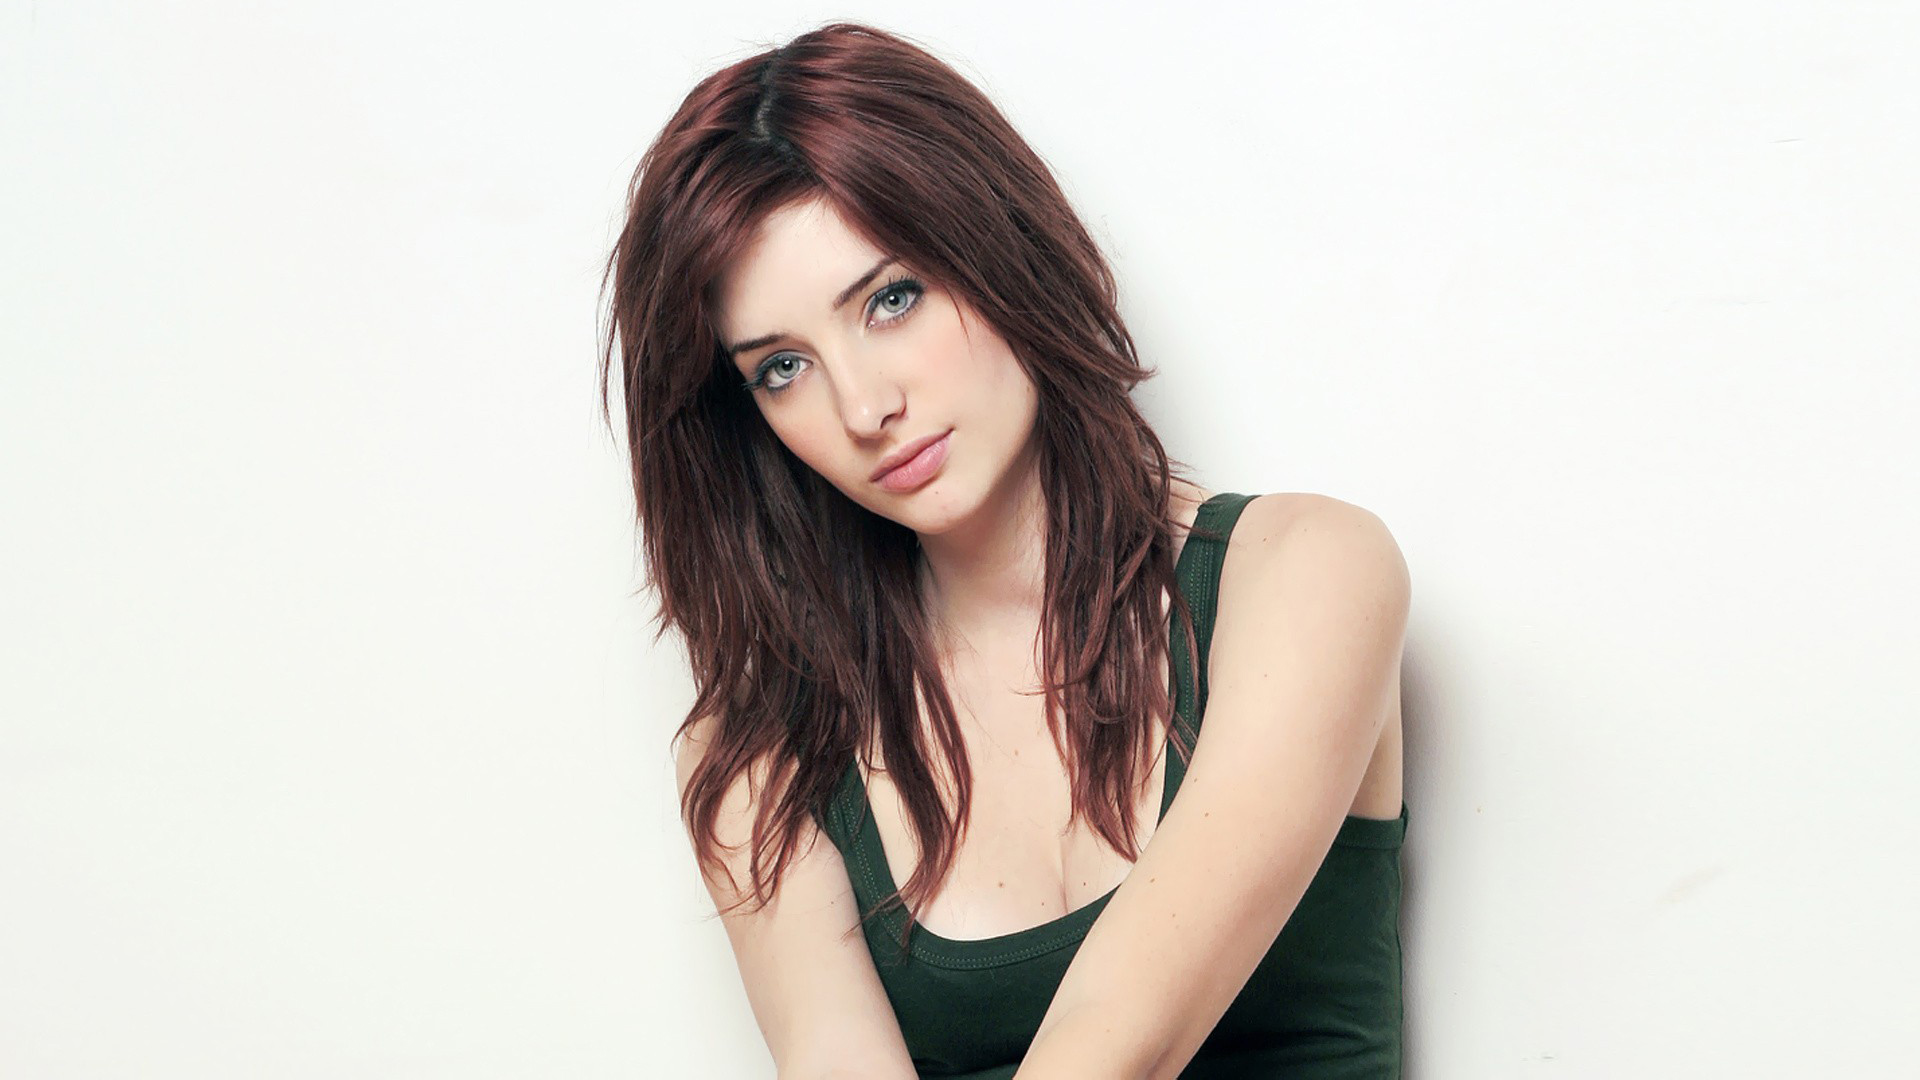 susan coffey images susan coffey hd wallpaper and background photos